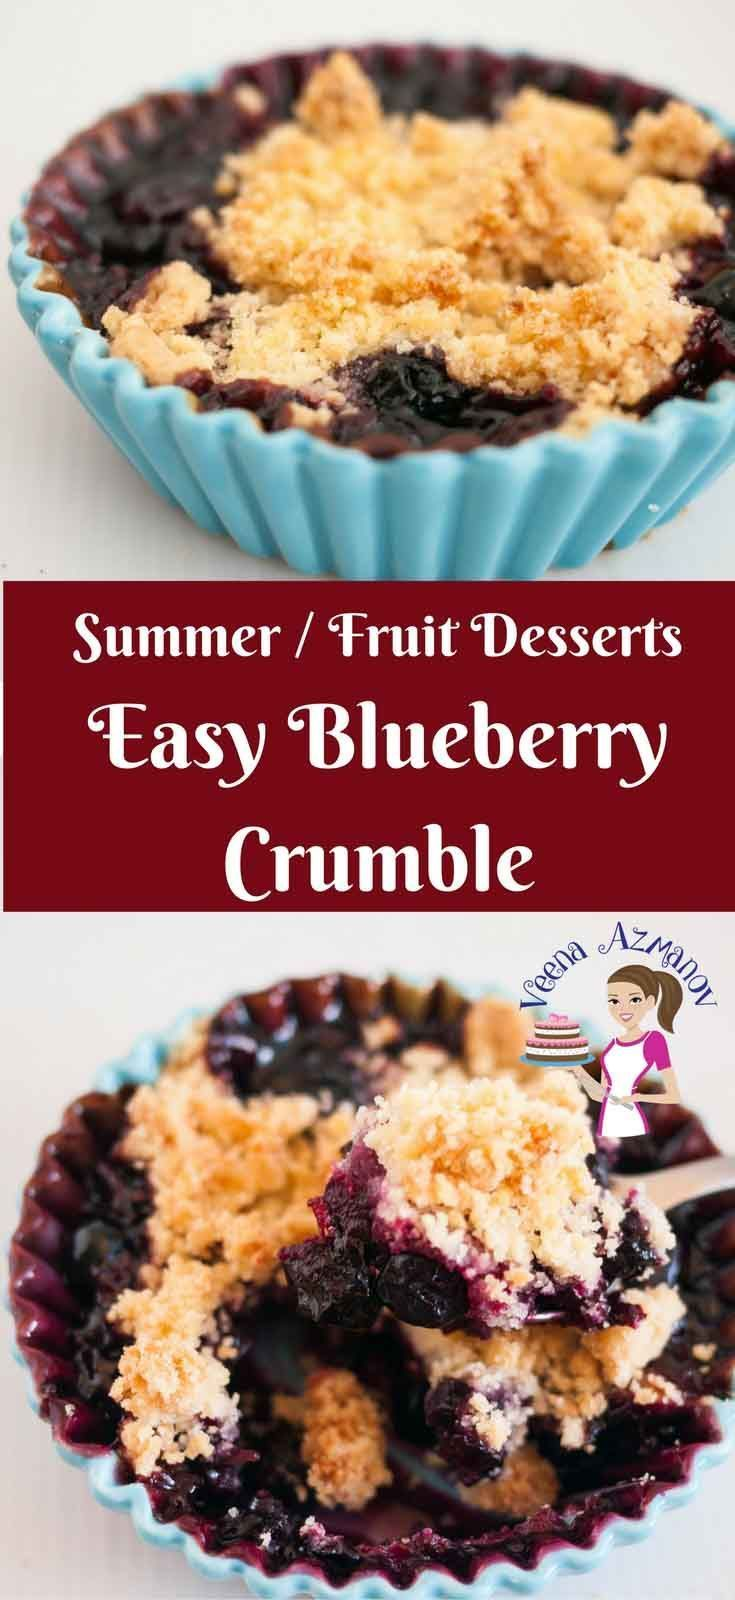 There Is Nothing More Delicious In Summer Than Fresh Sweet Berries Is Season This Ea Easy Blueberry Crumble Dessert Recipes Easy Easy Blueberry Crumble Recipe